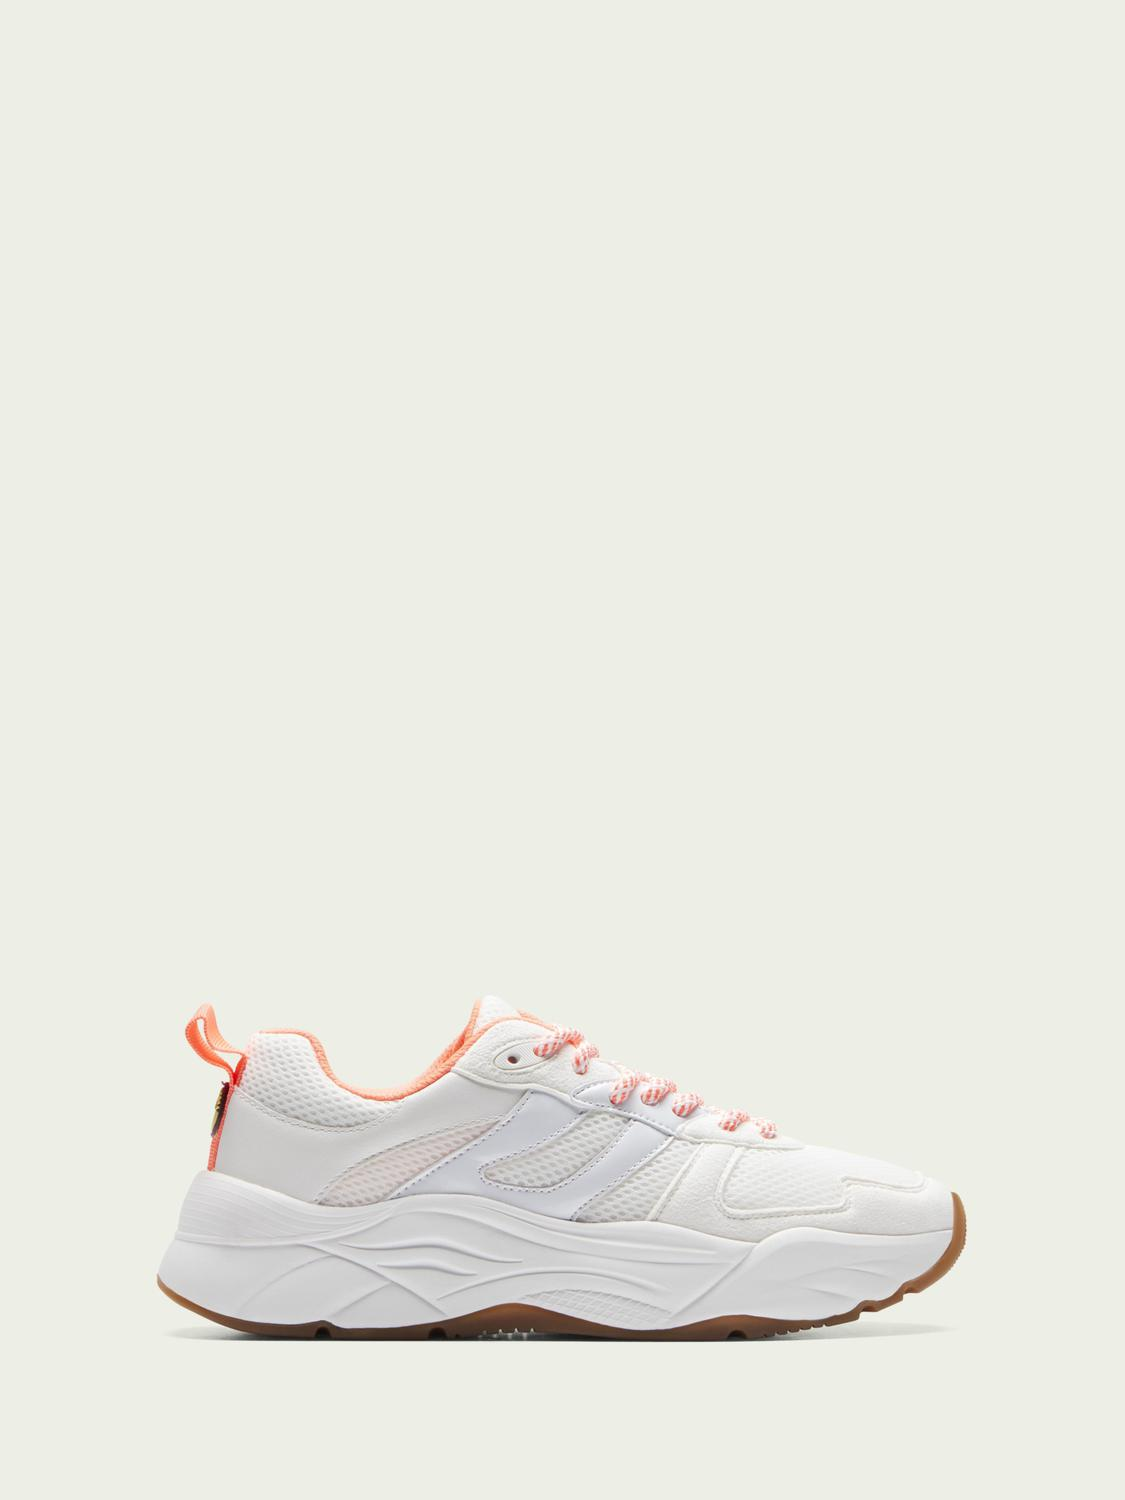 Celest lace-up sneakers